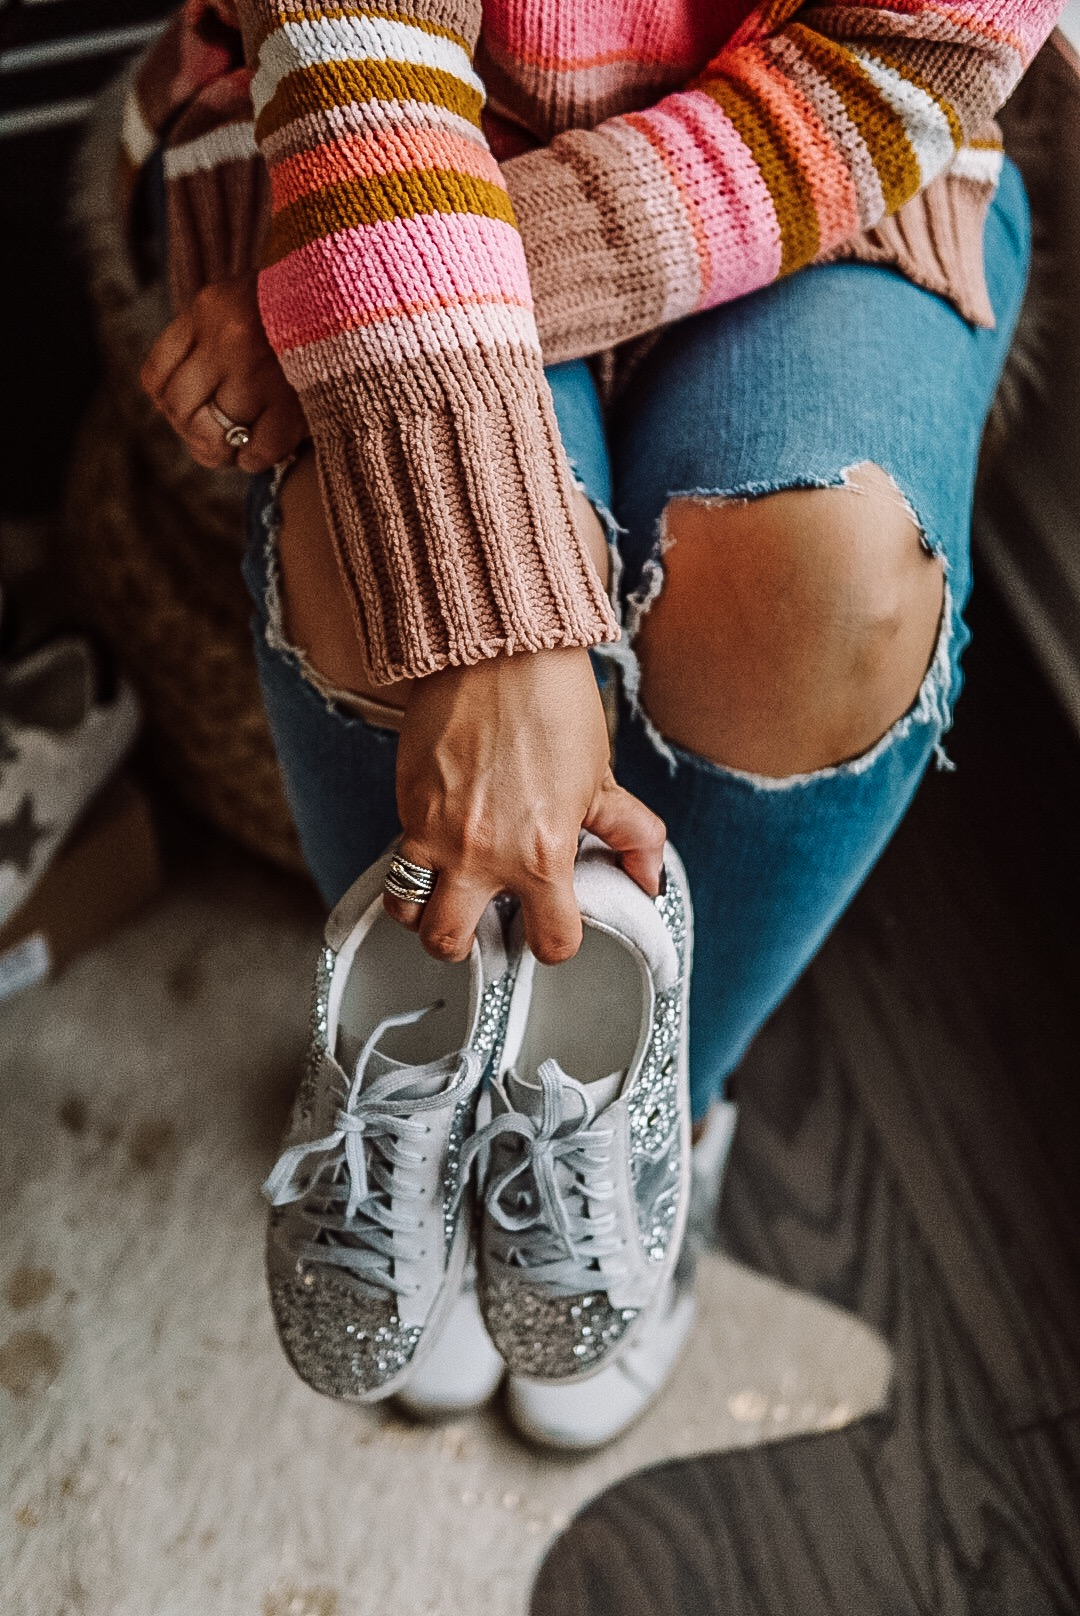 Golden Goose Sneakers + Dupes ( a full review) | Style | The Glitter Gospel, GGDB, luxury sneakers, shoe review, sneakers, Golden Goose, Fashion Review, Closet, Fall Styles, Fall Outfits